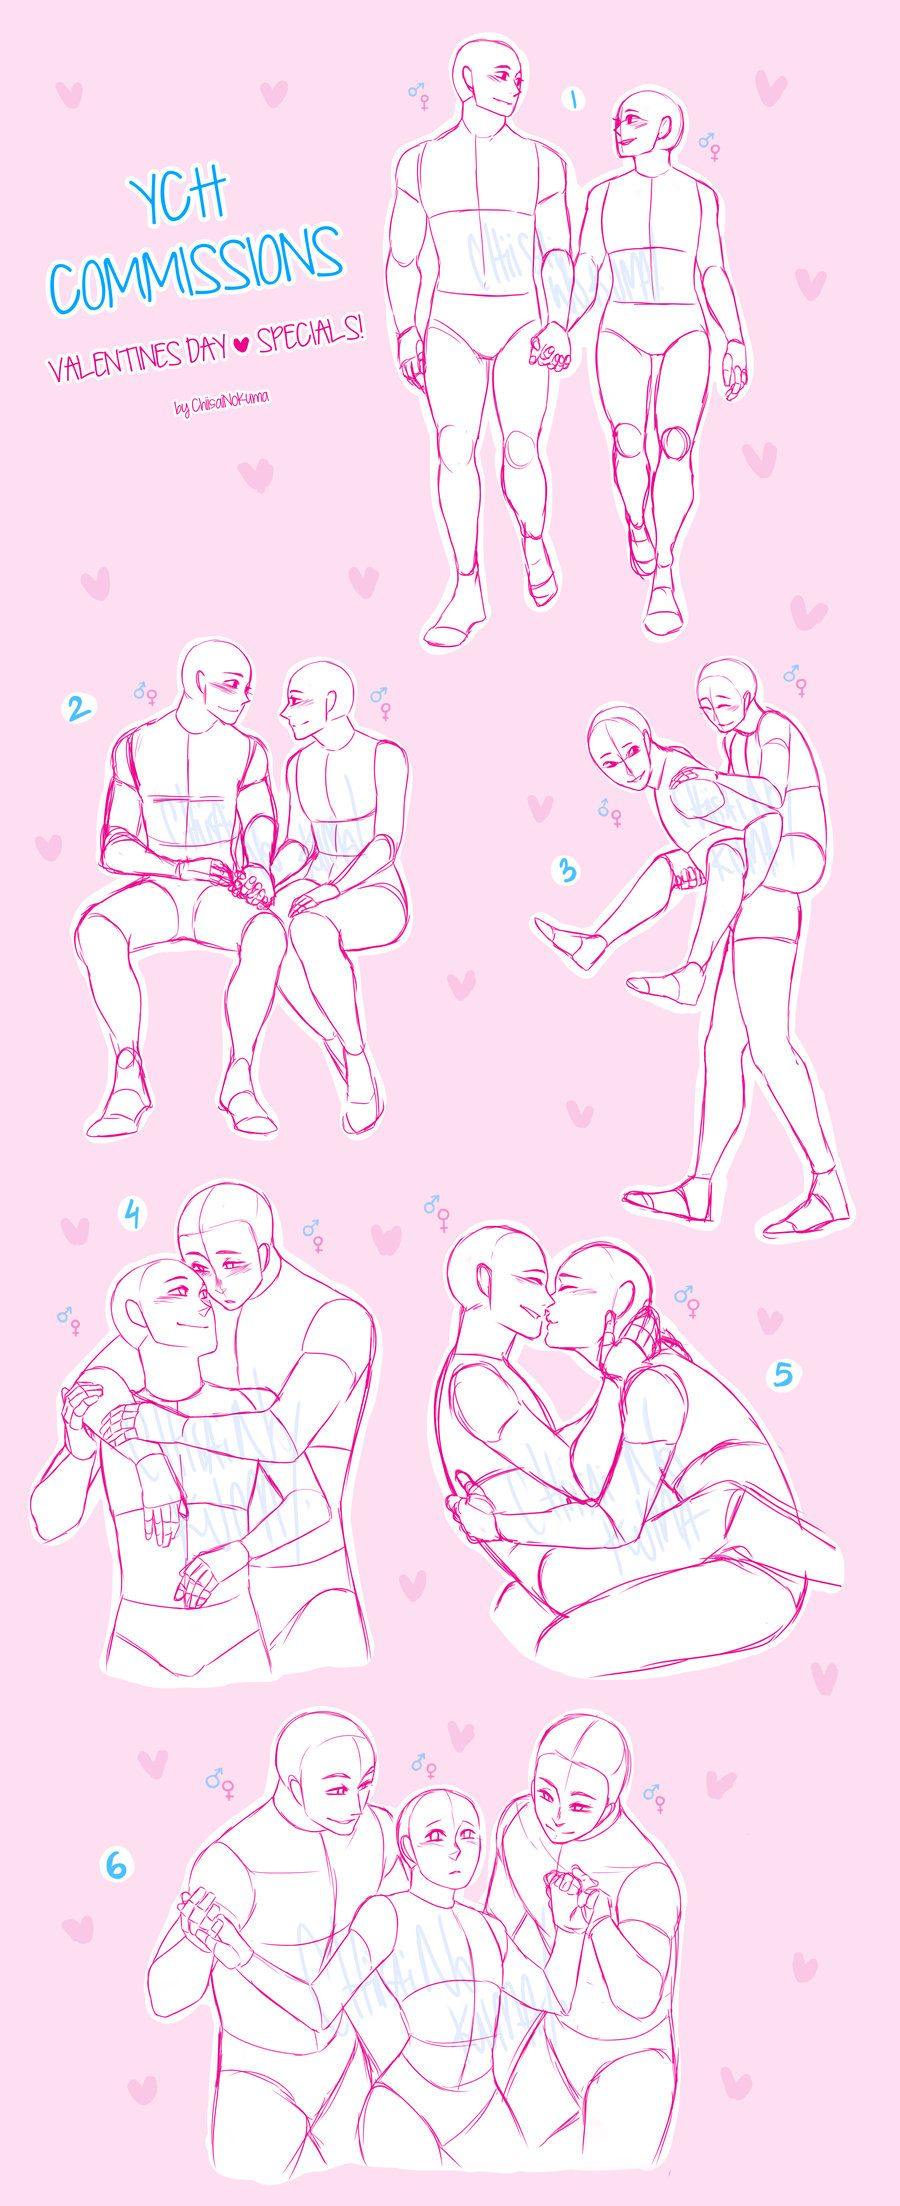 Ych Commissions Valentines Day Specials Open By Chiisainokuma